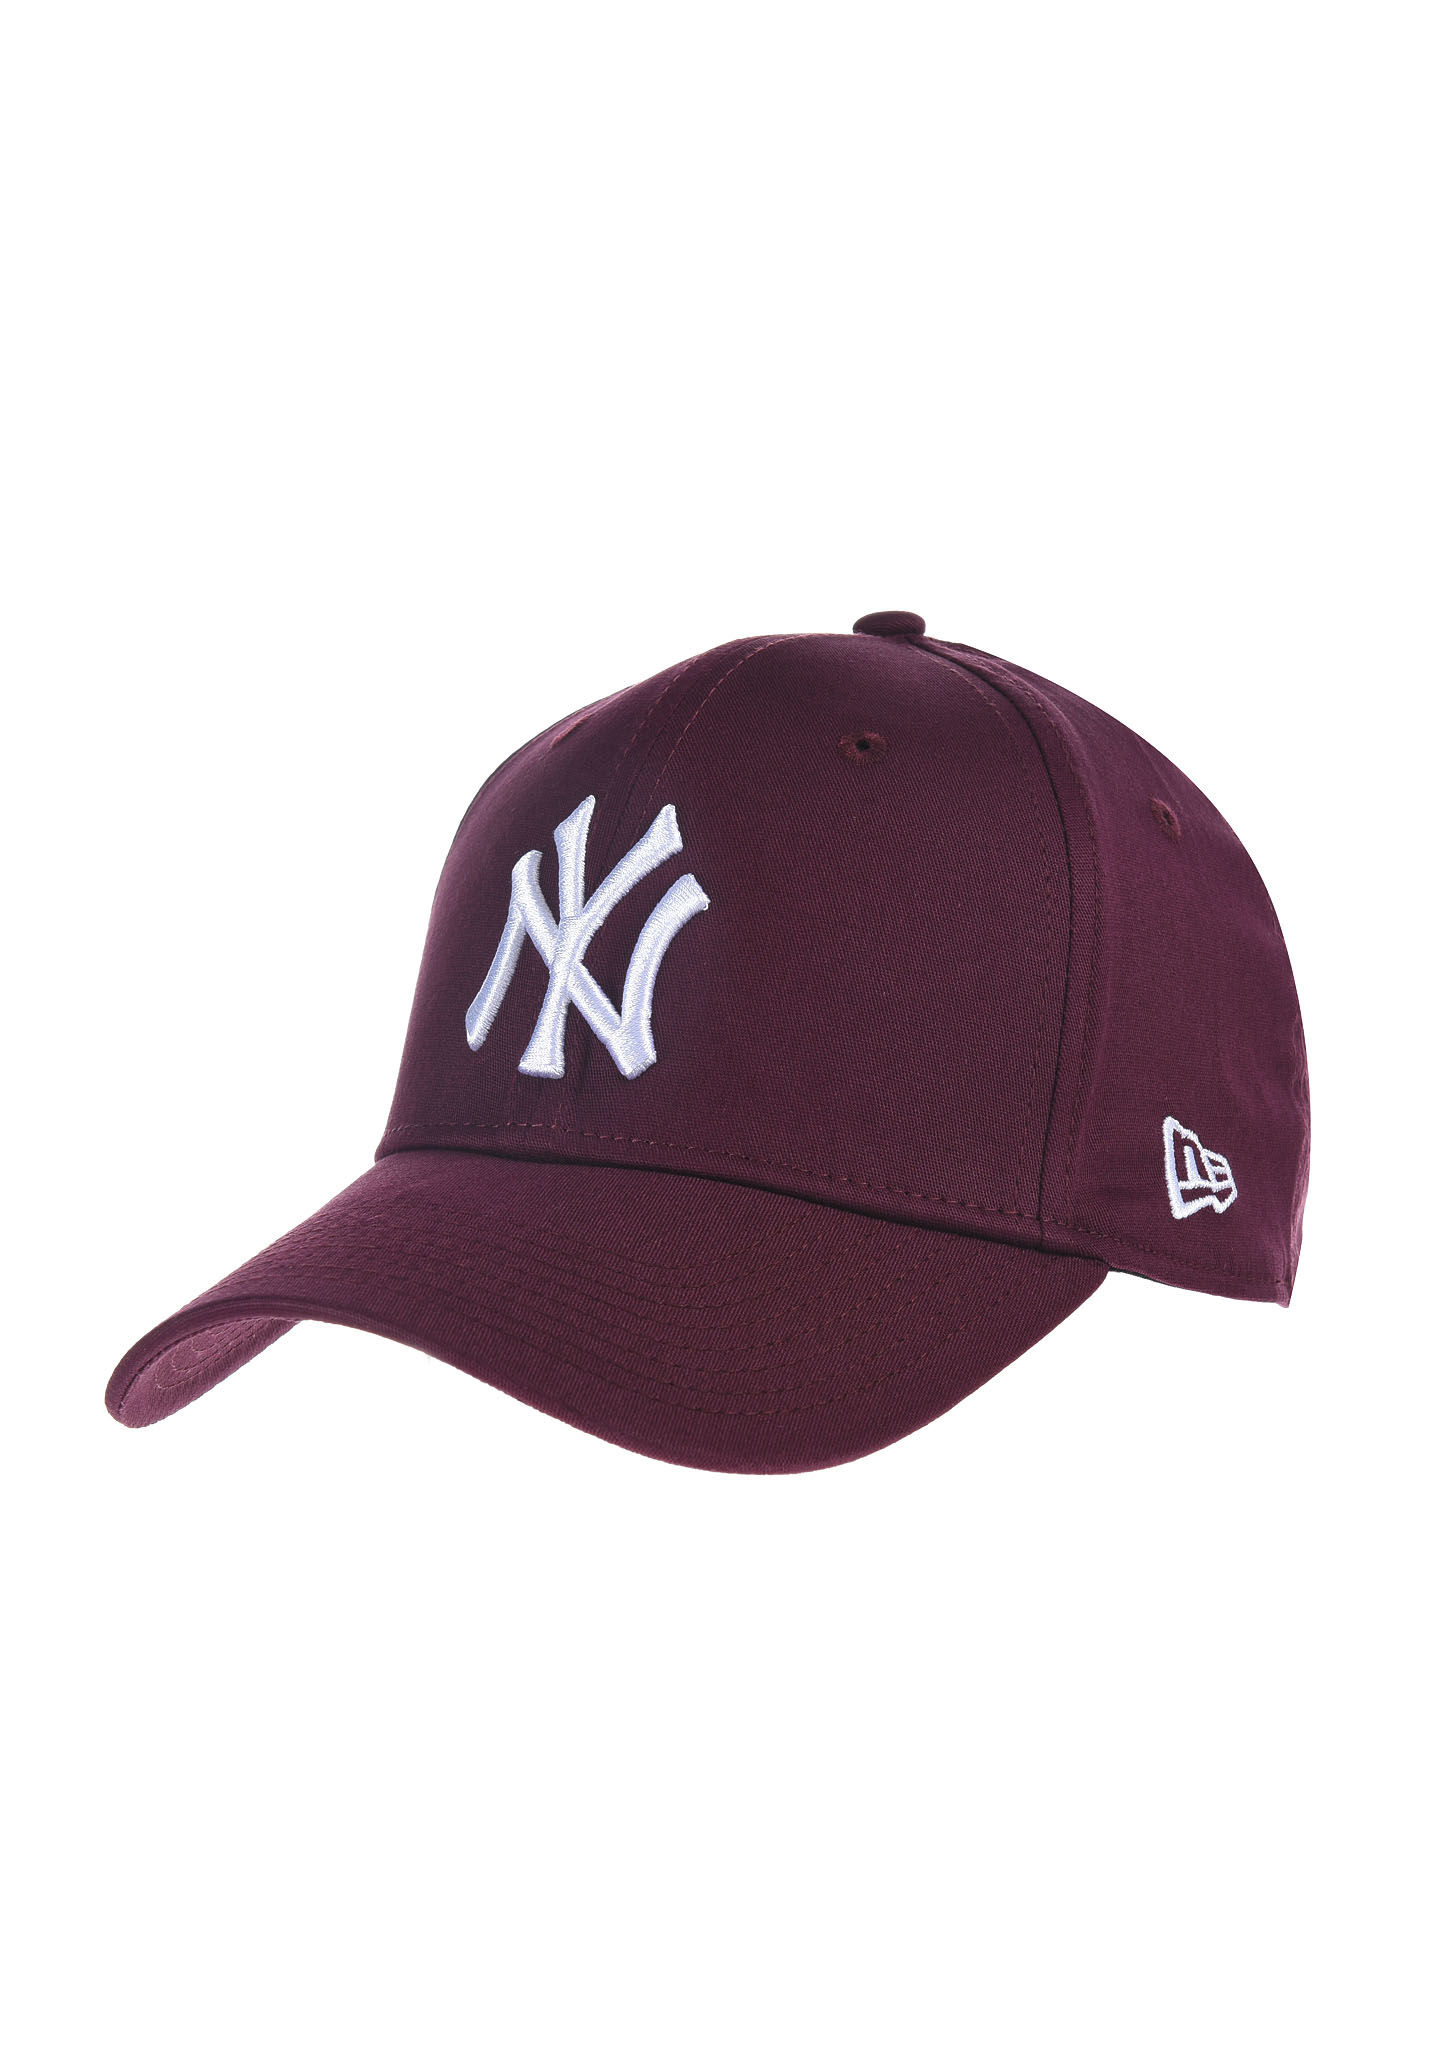 NEW Era League Essential 3930 New York Yankees - Fitted Cap - Red - Planet  Sports 6e0167a8d00